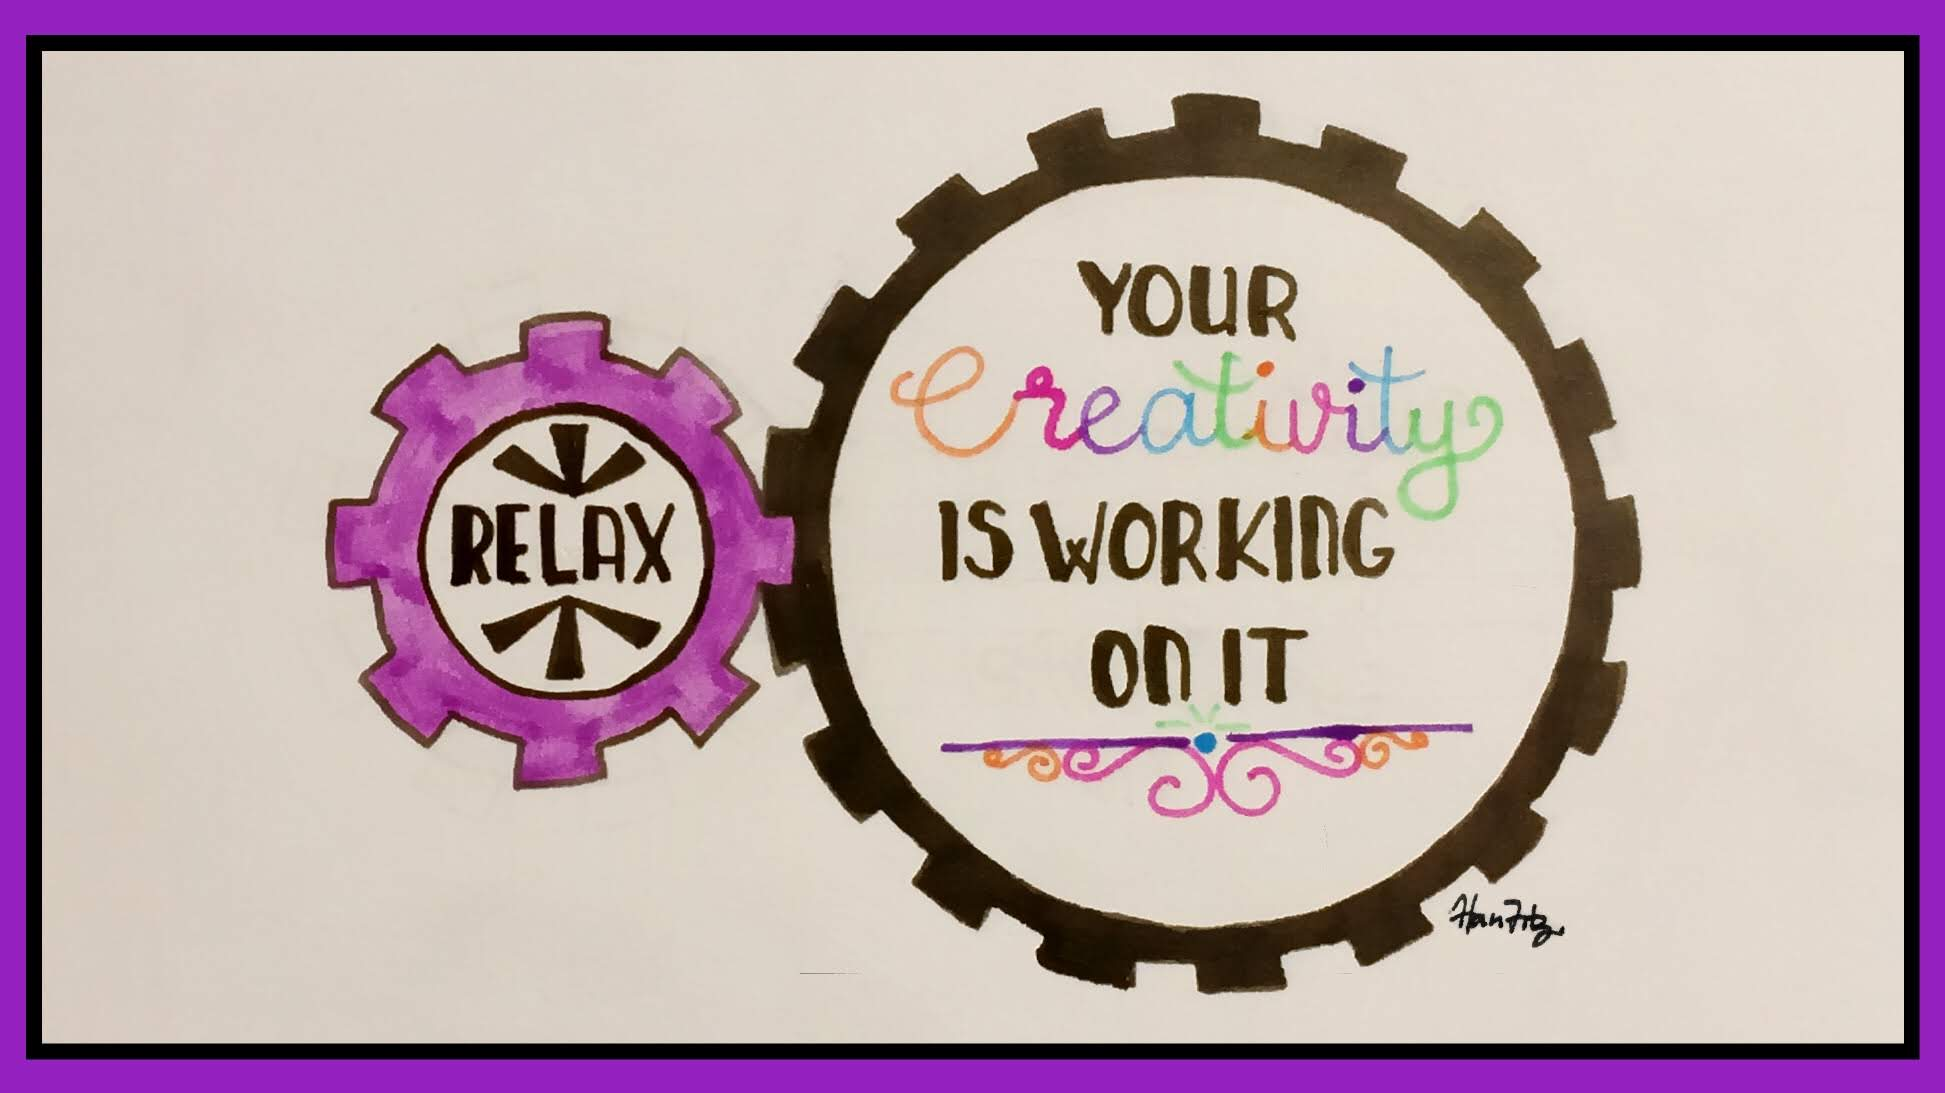 Relax. Your Creativity is Working On It. This is drawn inside 2 cogs suggesting that you don't have to force all the work yourself.